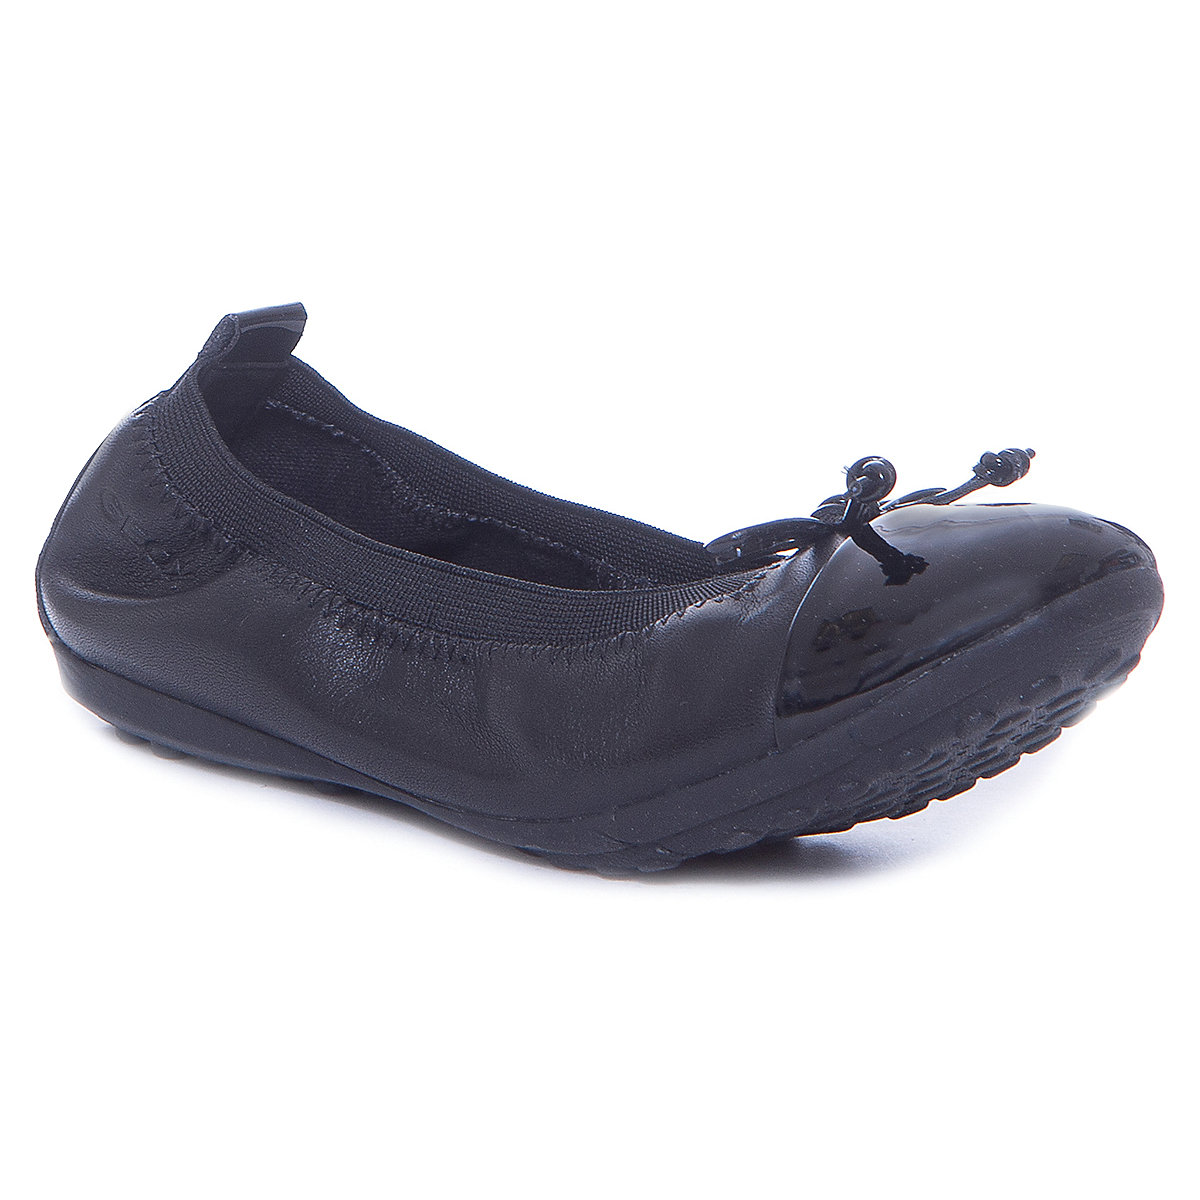 GEOX Leather Shoes 8786606 for baby girl kids Girls Leather MTpromo